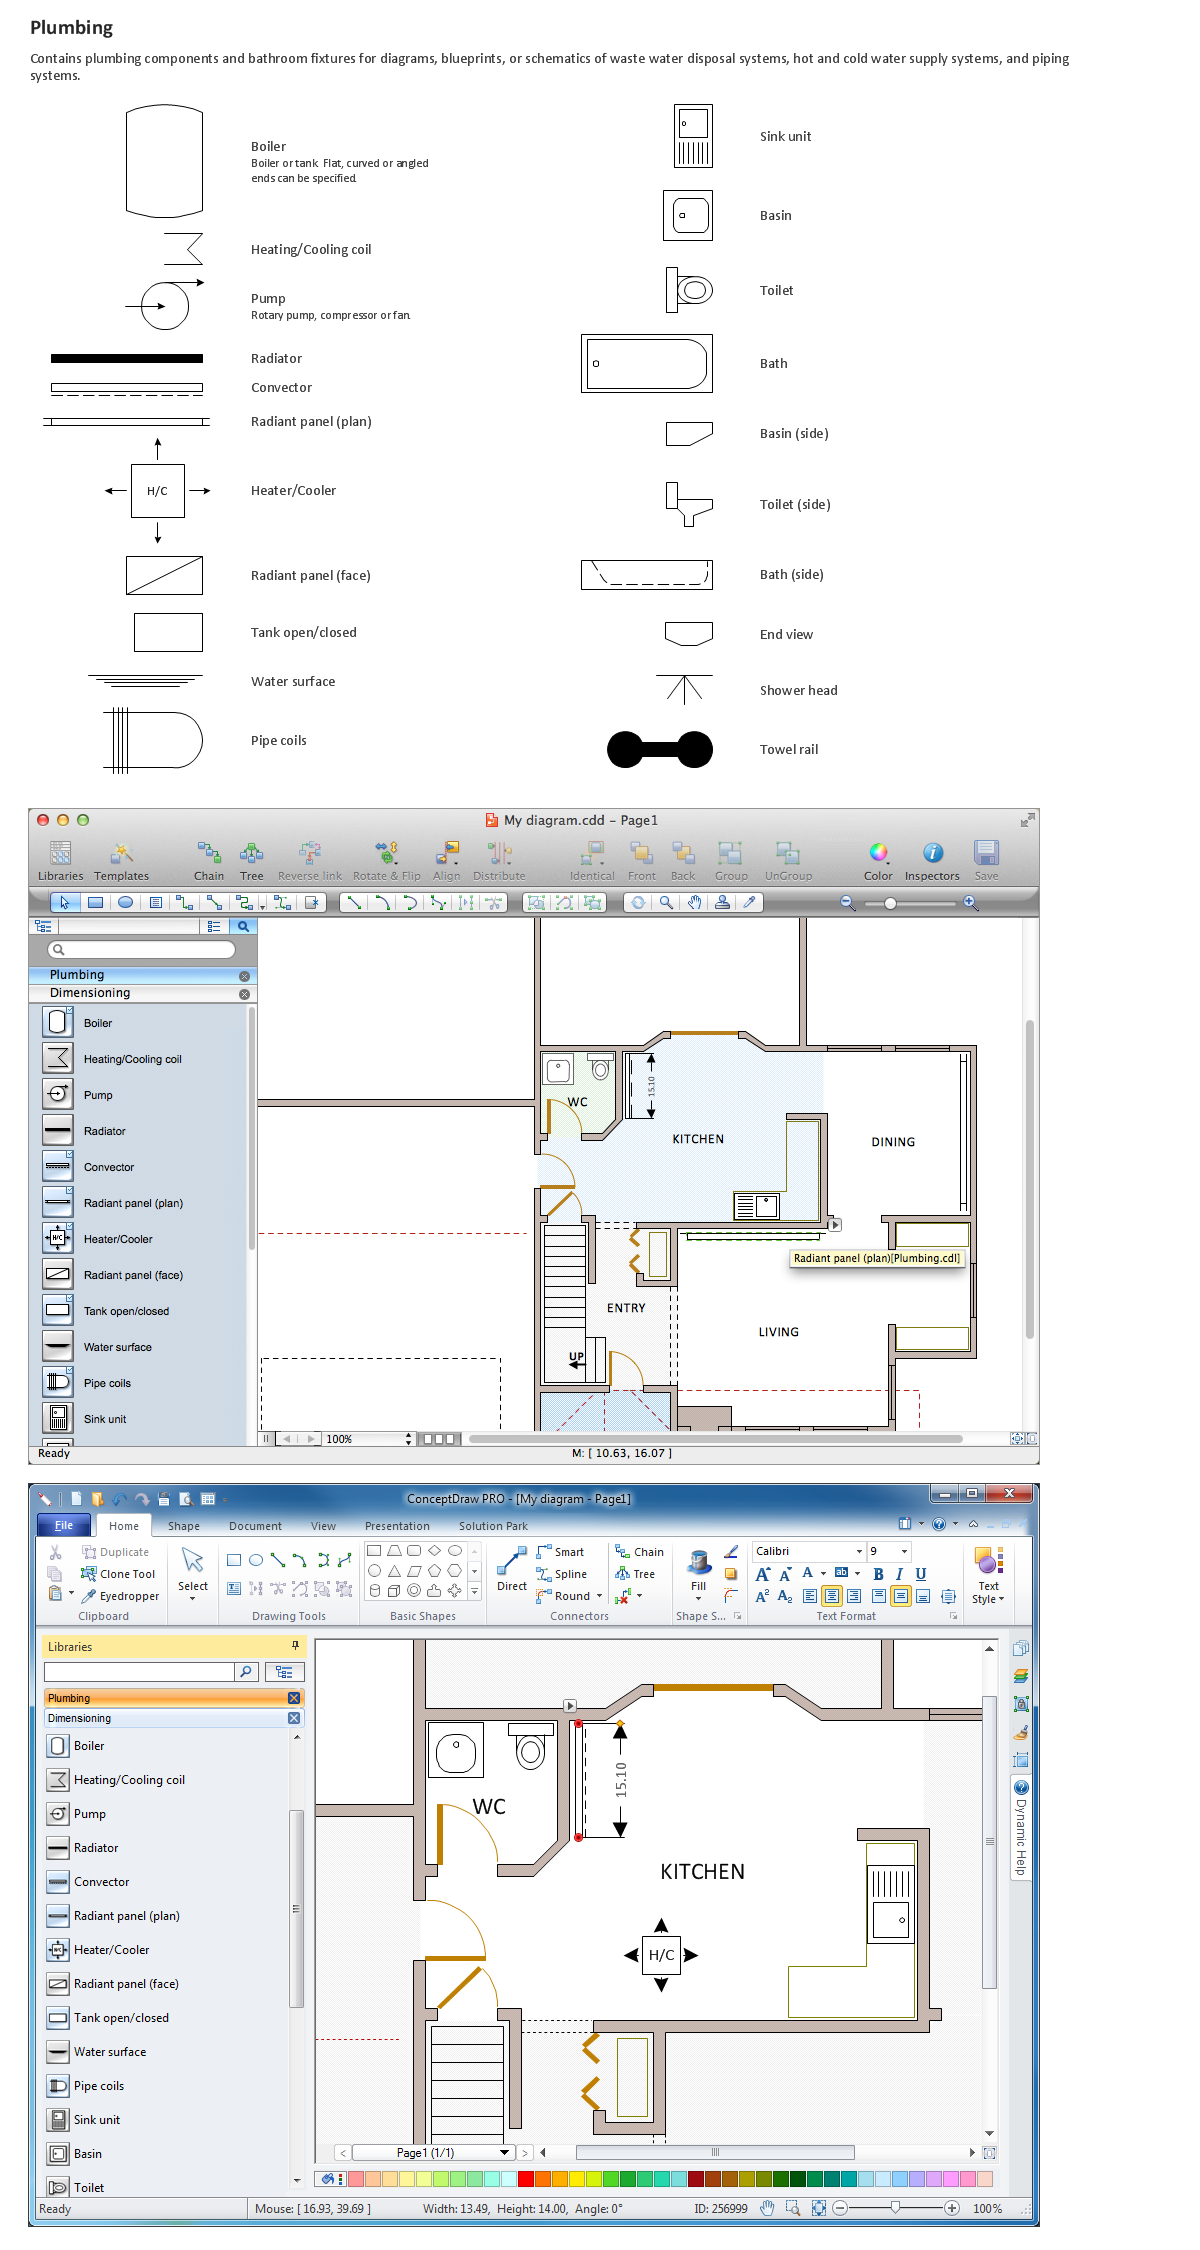 Building drawing tools design element plumbing for Construction layout software